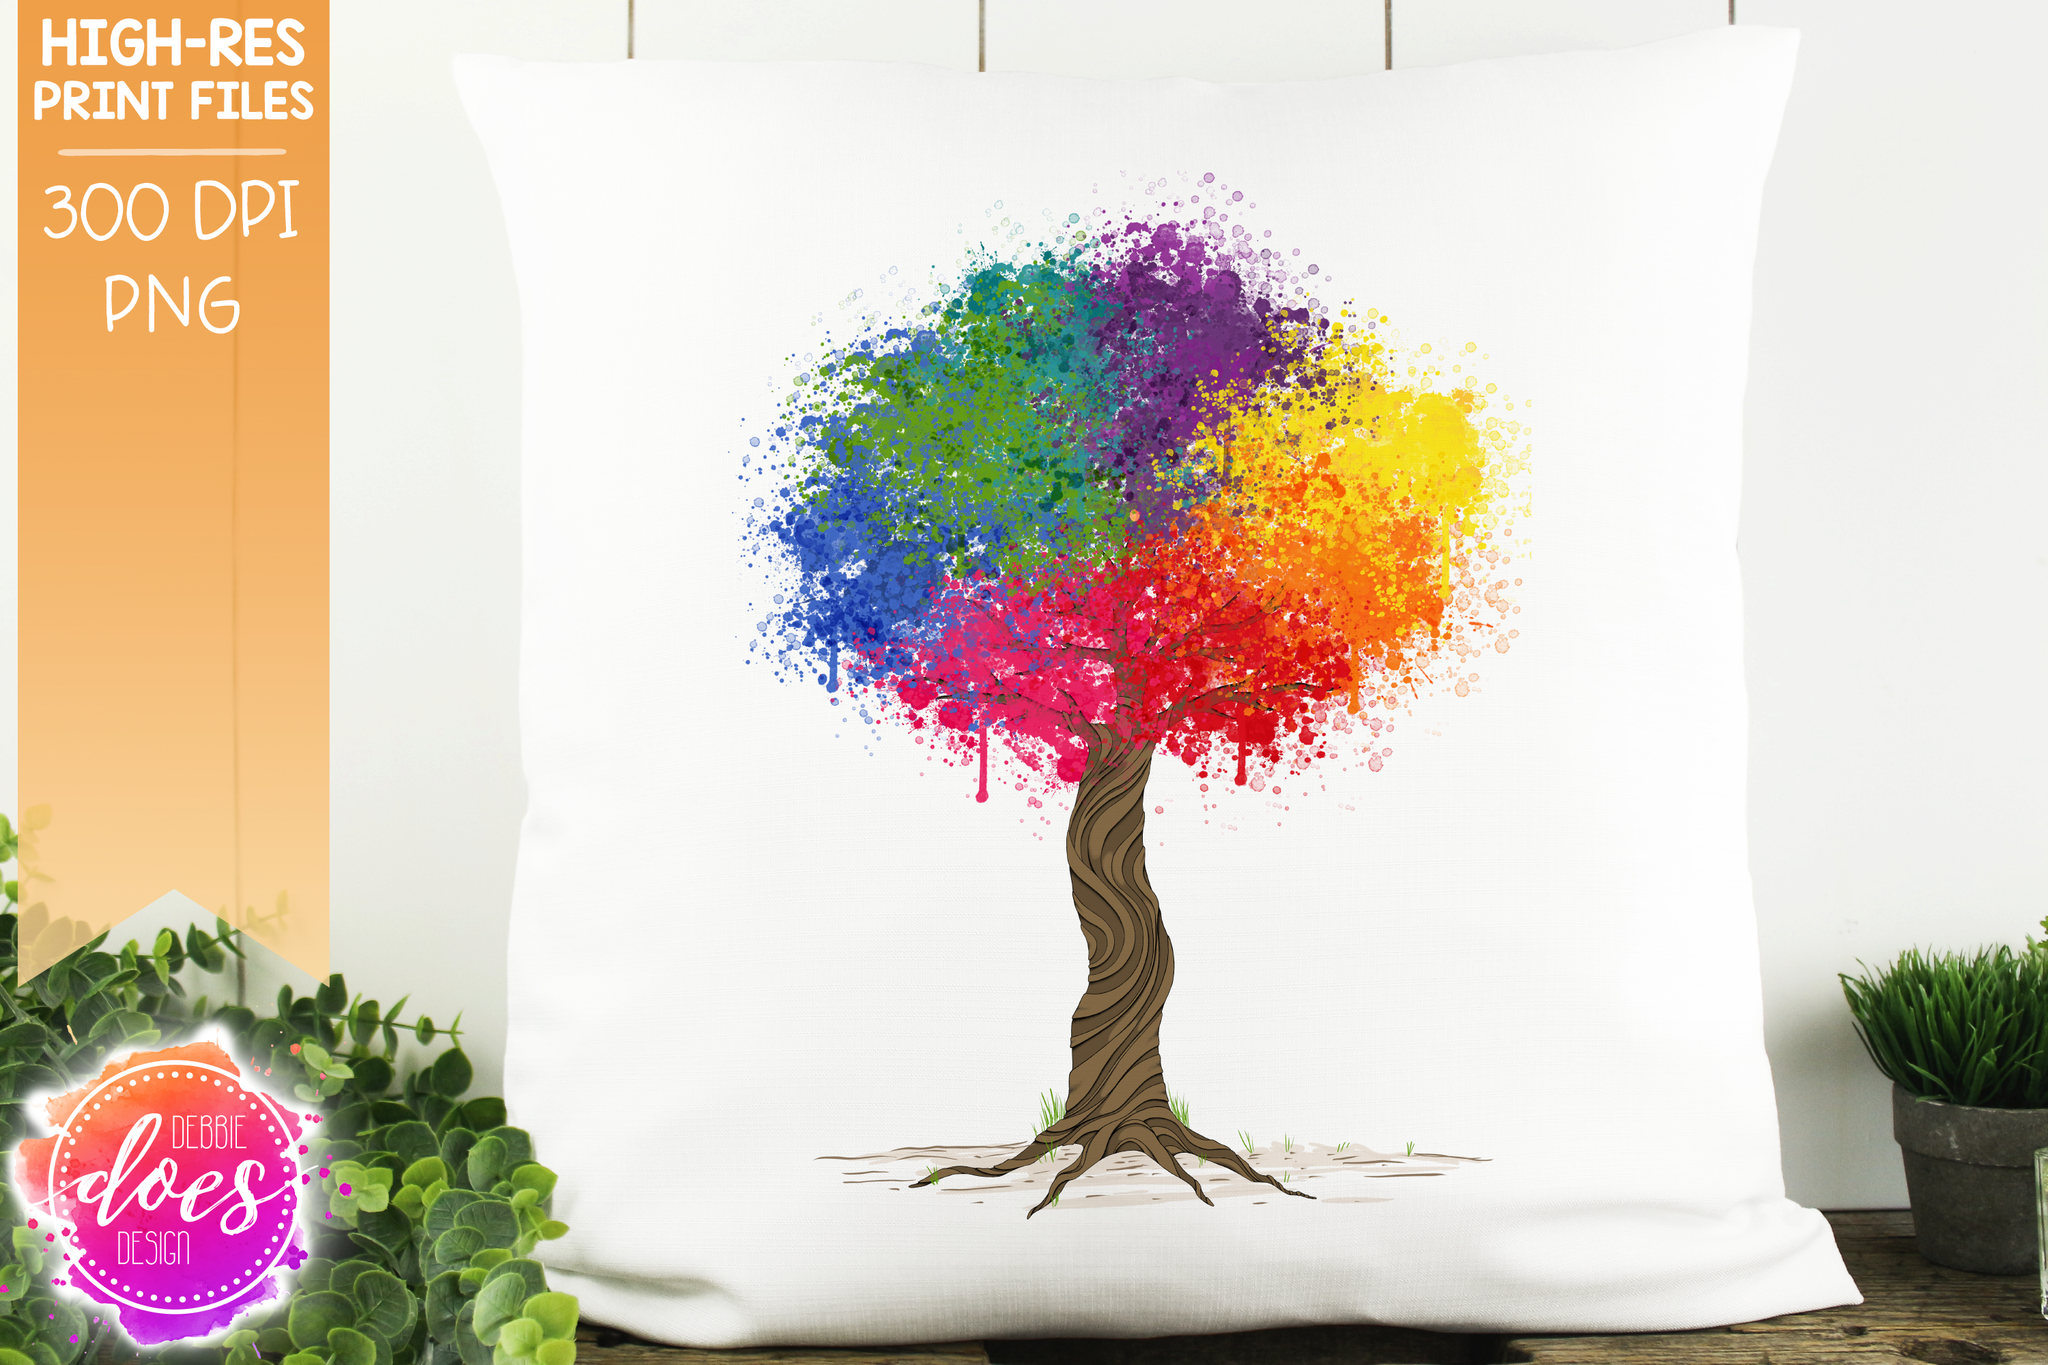 Rainbow Paint Splatter Tree - Sublimation/Printable Design